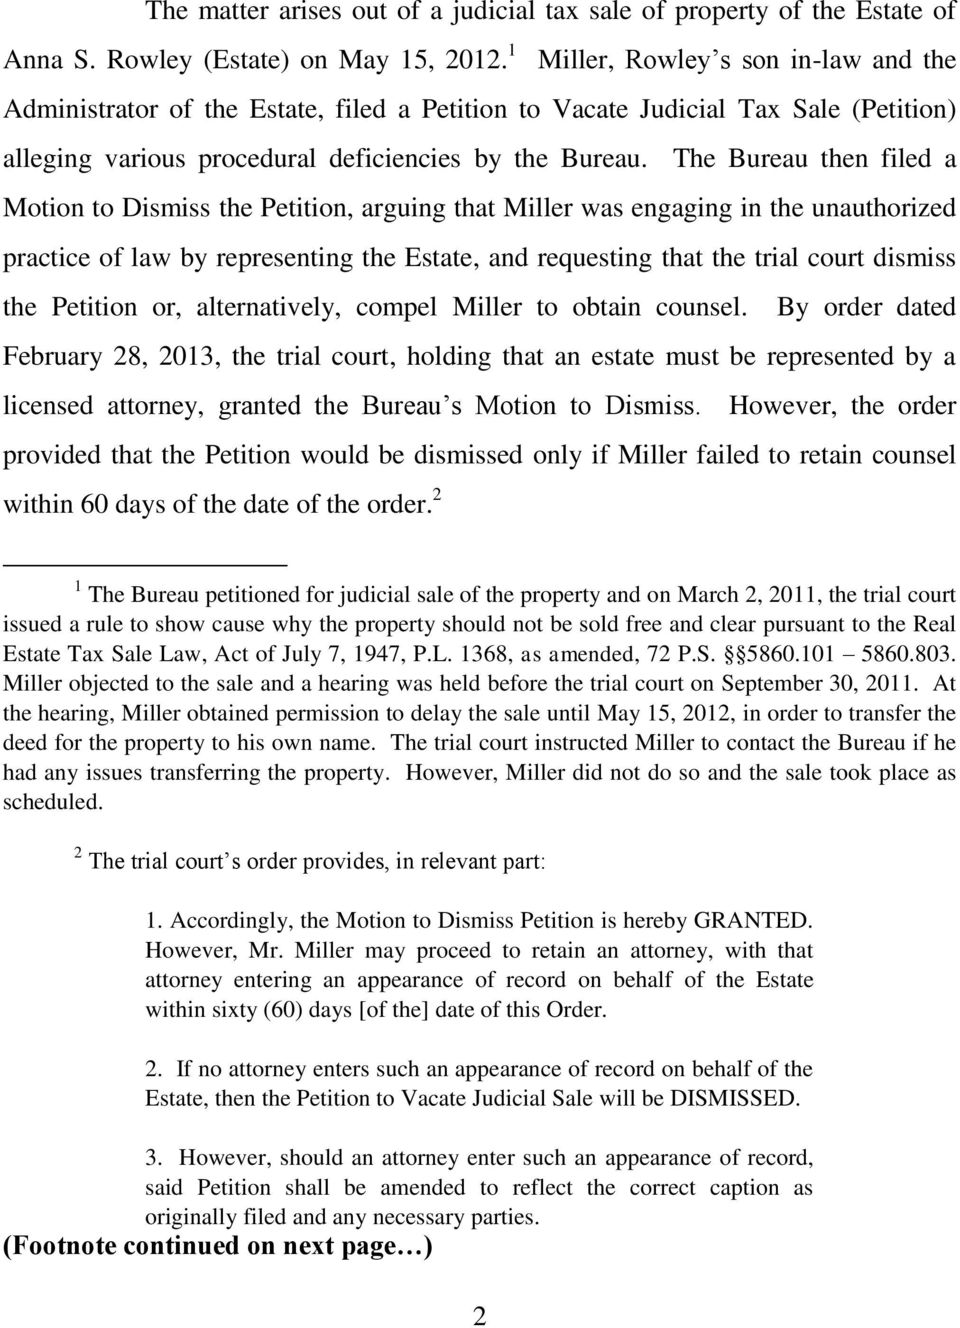 The Bureau then filed a Motion to Dismiss the Petition, arguing that Miller was engaging in the unauthorized practice of law by representing the Estate, and requesting that the trial court dismiss